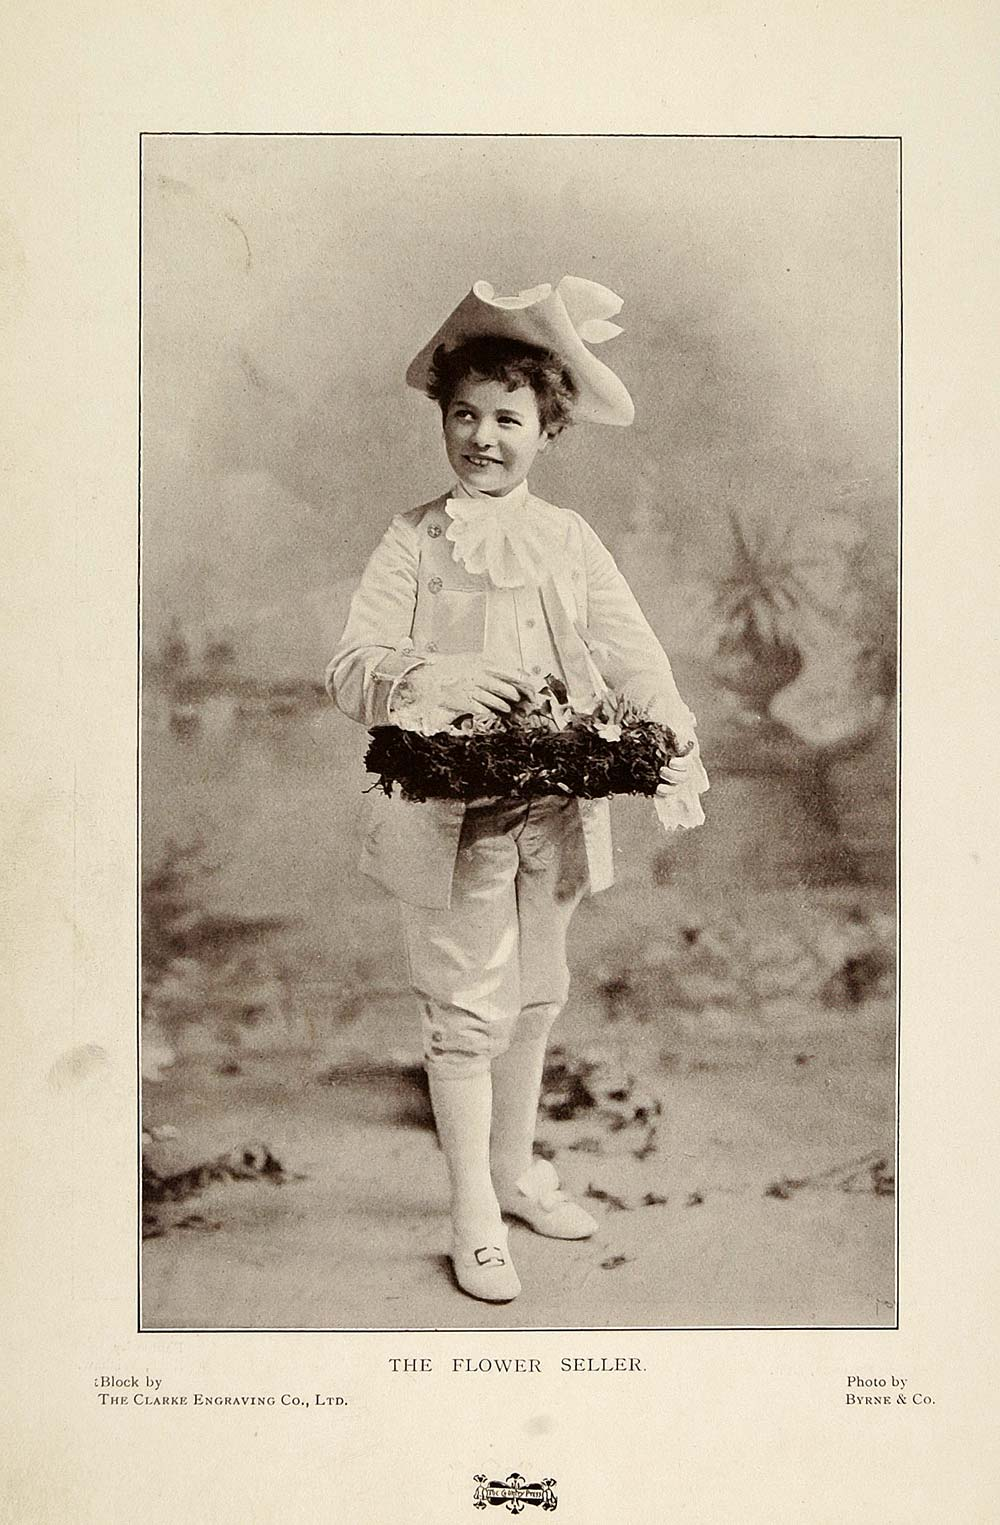 1901 Print Flower Seller Little Lord Fauntleroy Suit Original Histor Period Paper